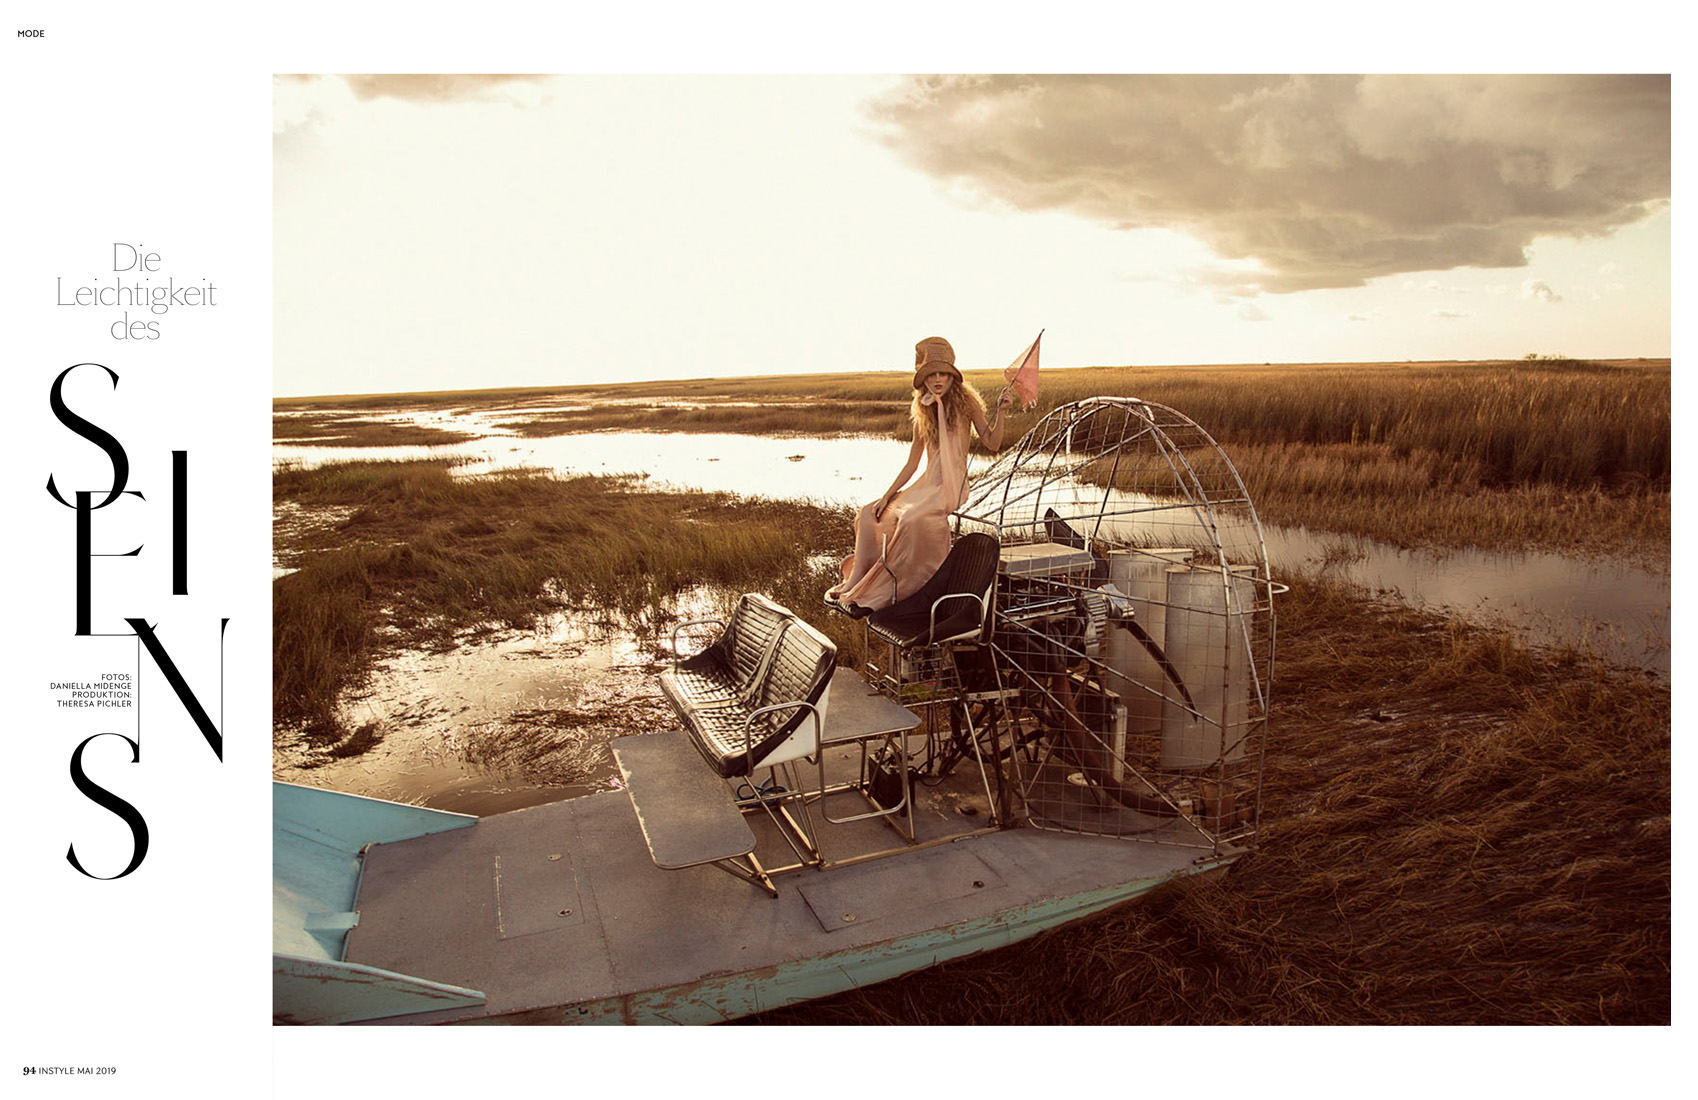 INST190005_20_Mode_GNTM_Everglades-1.jpg